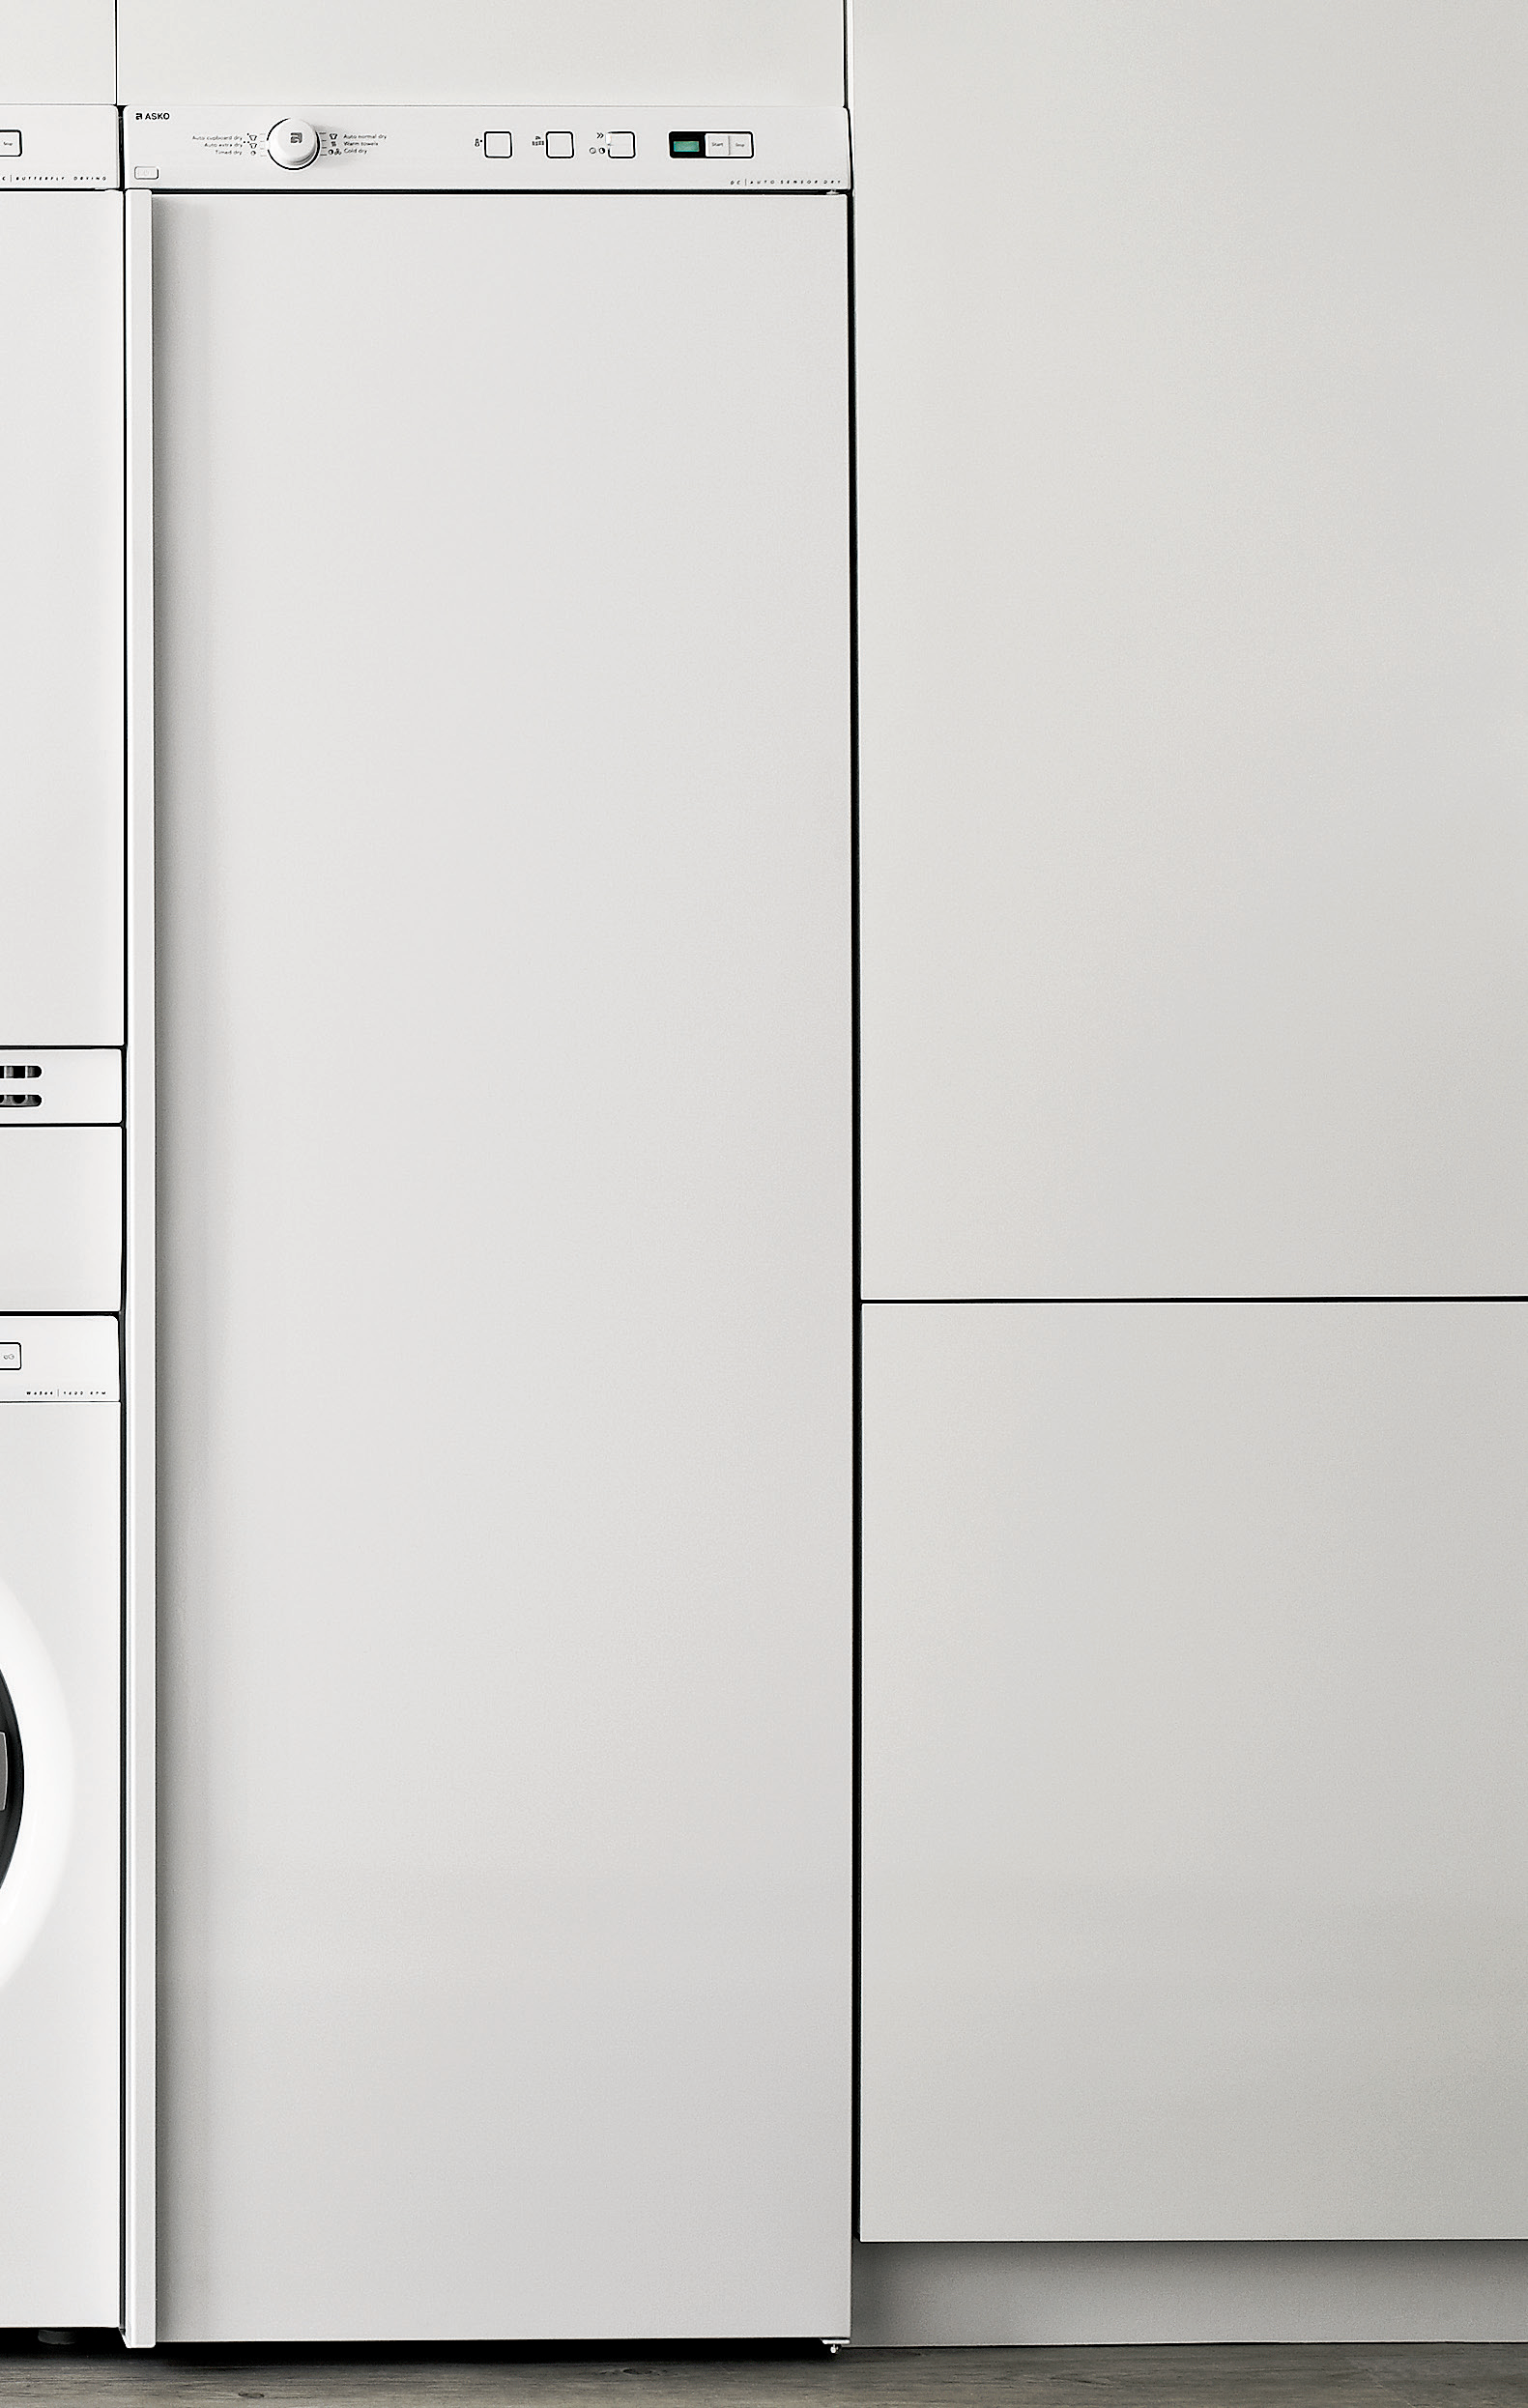 Drying cabinets, DC7583, Asko By Hafele | Your Dream Kitchen ...